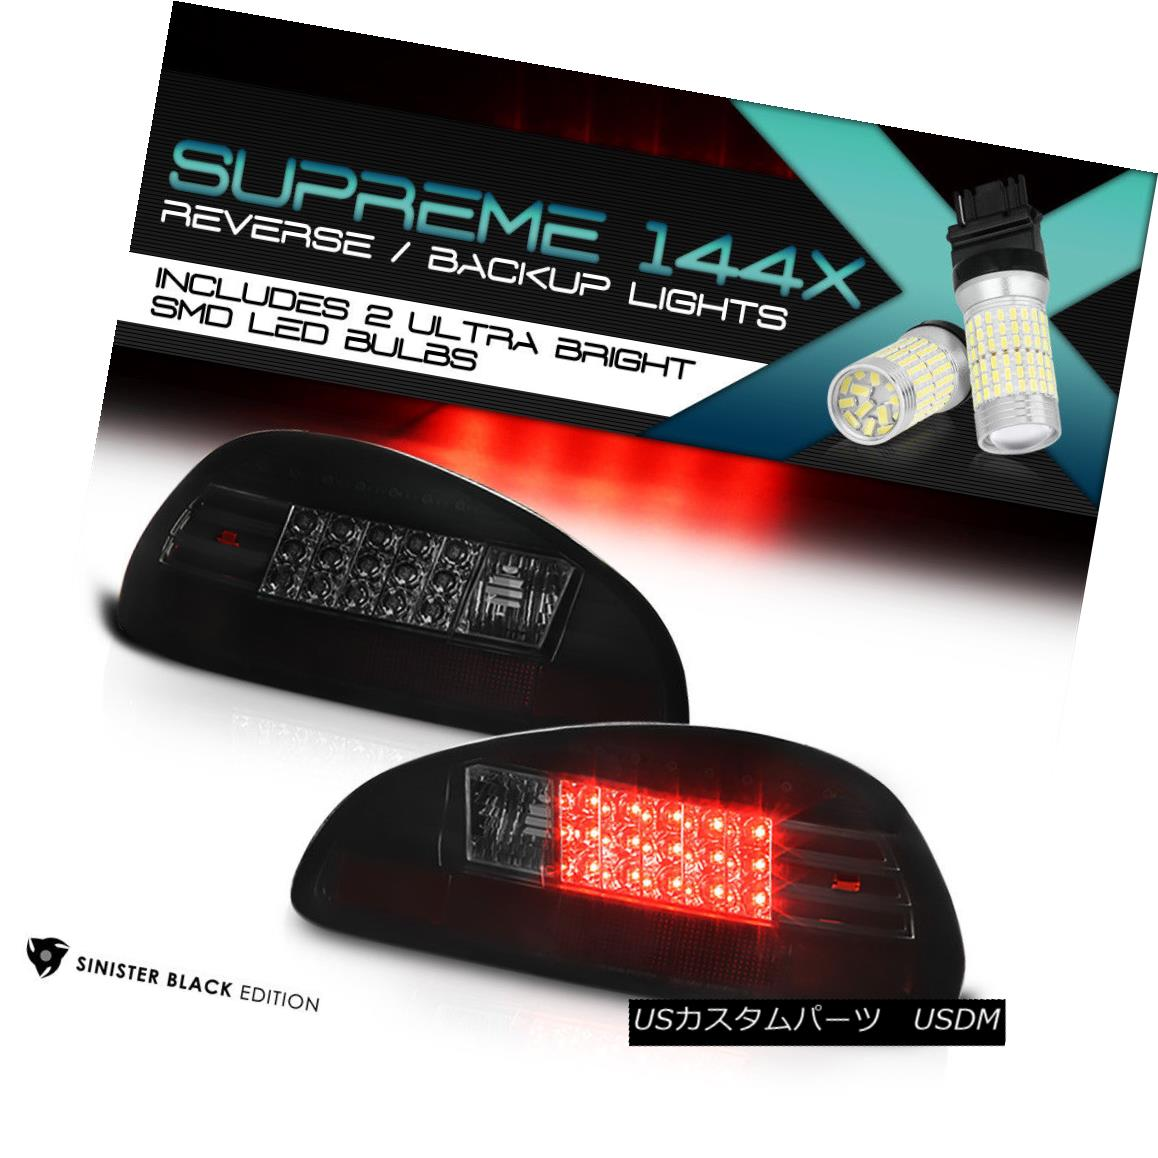 テールライト [FULL SMD BACKUP] 1997-2003 Pontiac Grand Prix GT SE Coupe Sedan LED Tail Lights [FULL SMD BACKUP] 1997-2003ポンティアックグランプリGT SEクーペセダンLEDテールライト